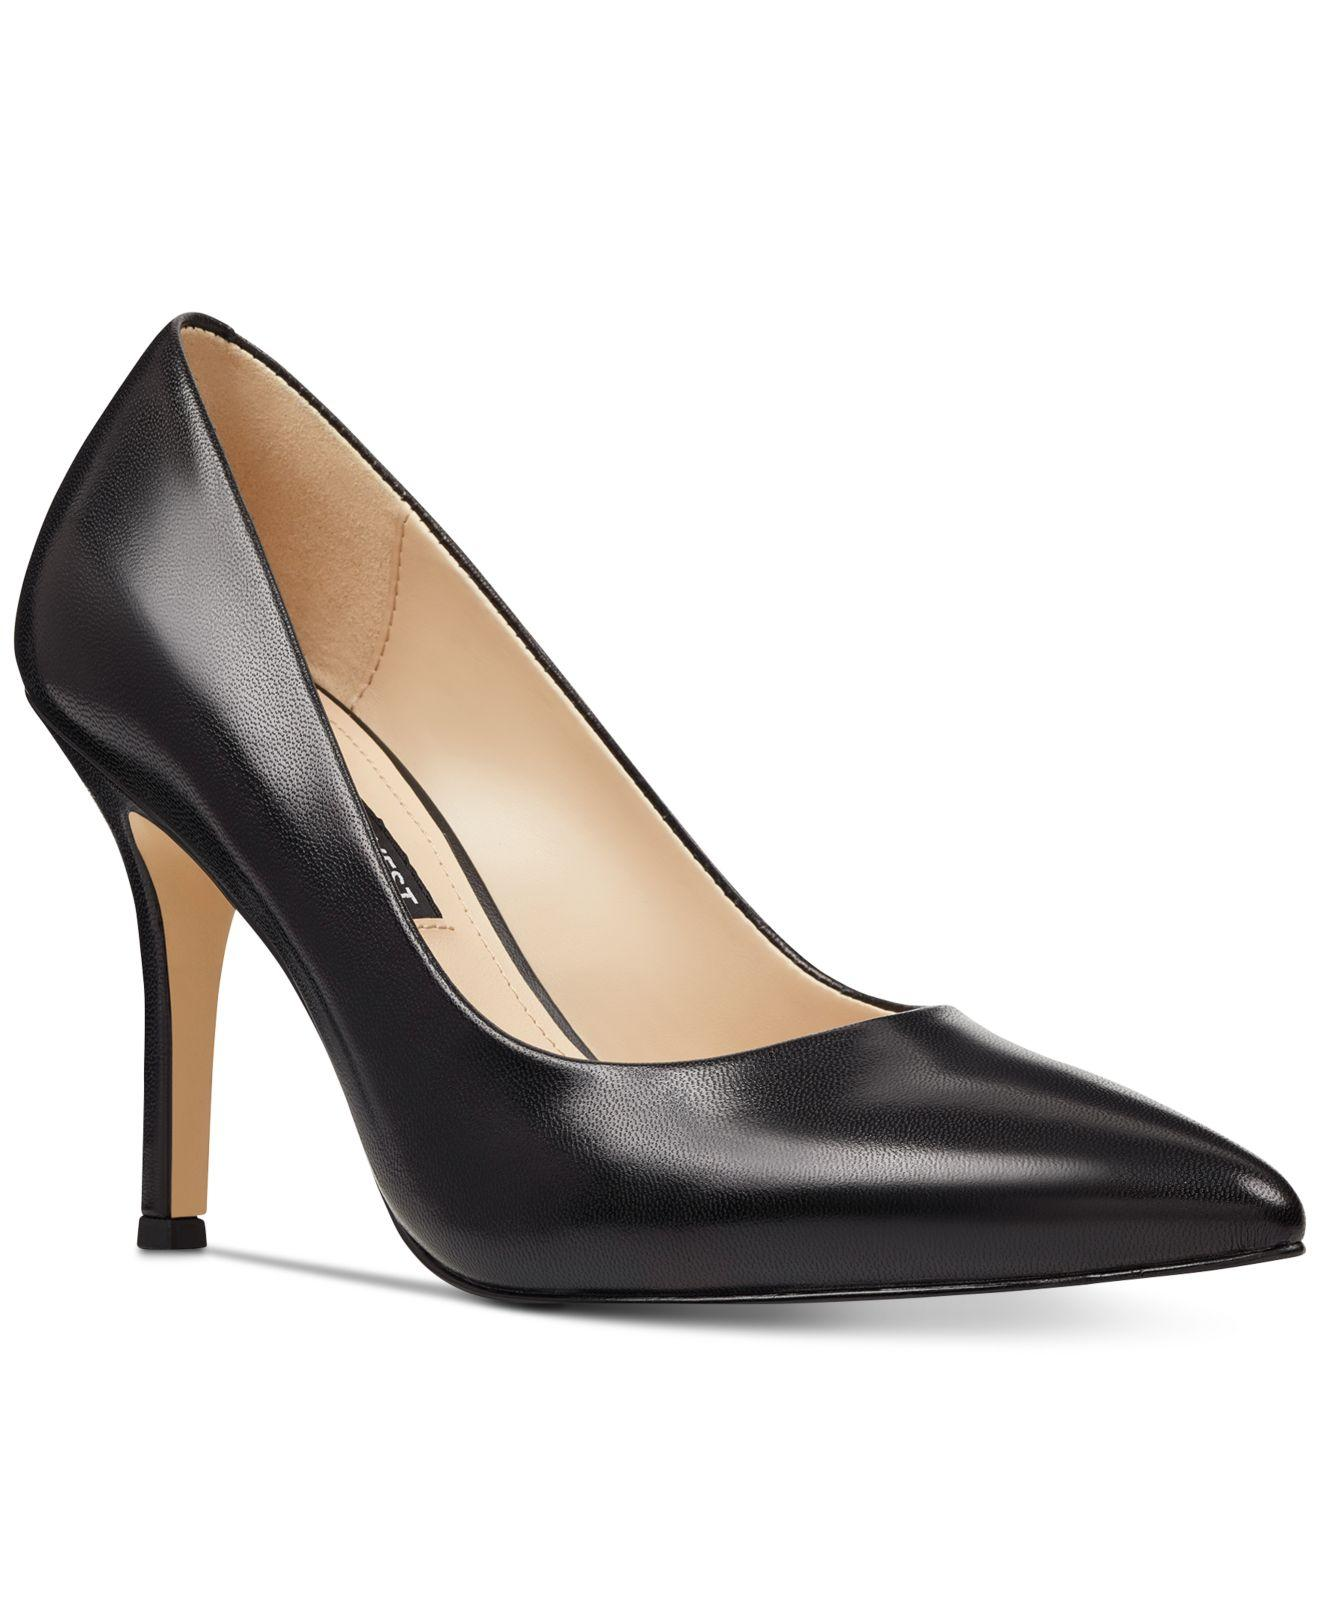 01c96847a863 Lyst - Nine West Flax Pumps in Black